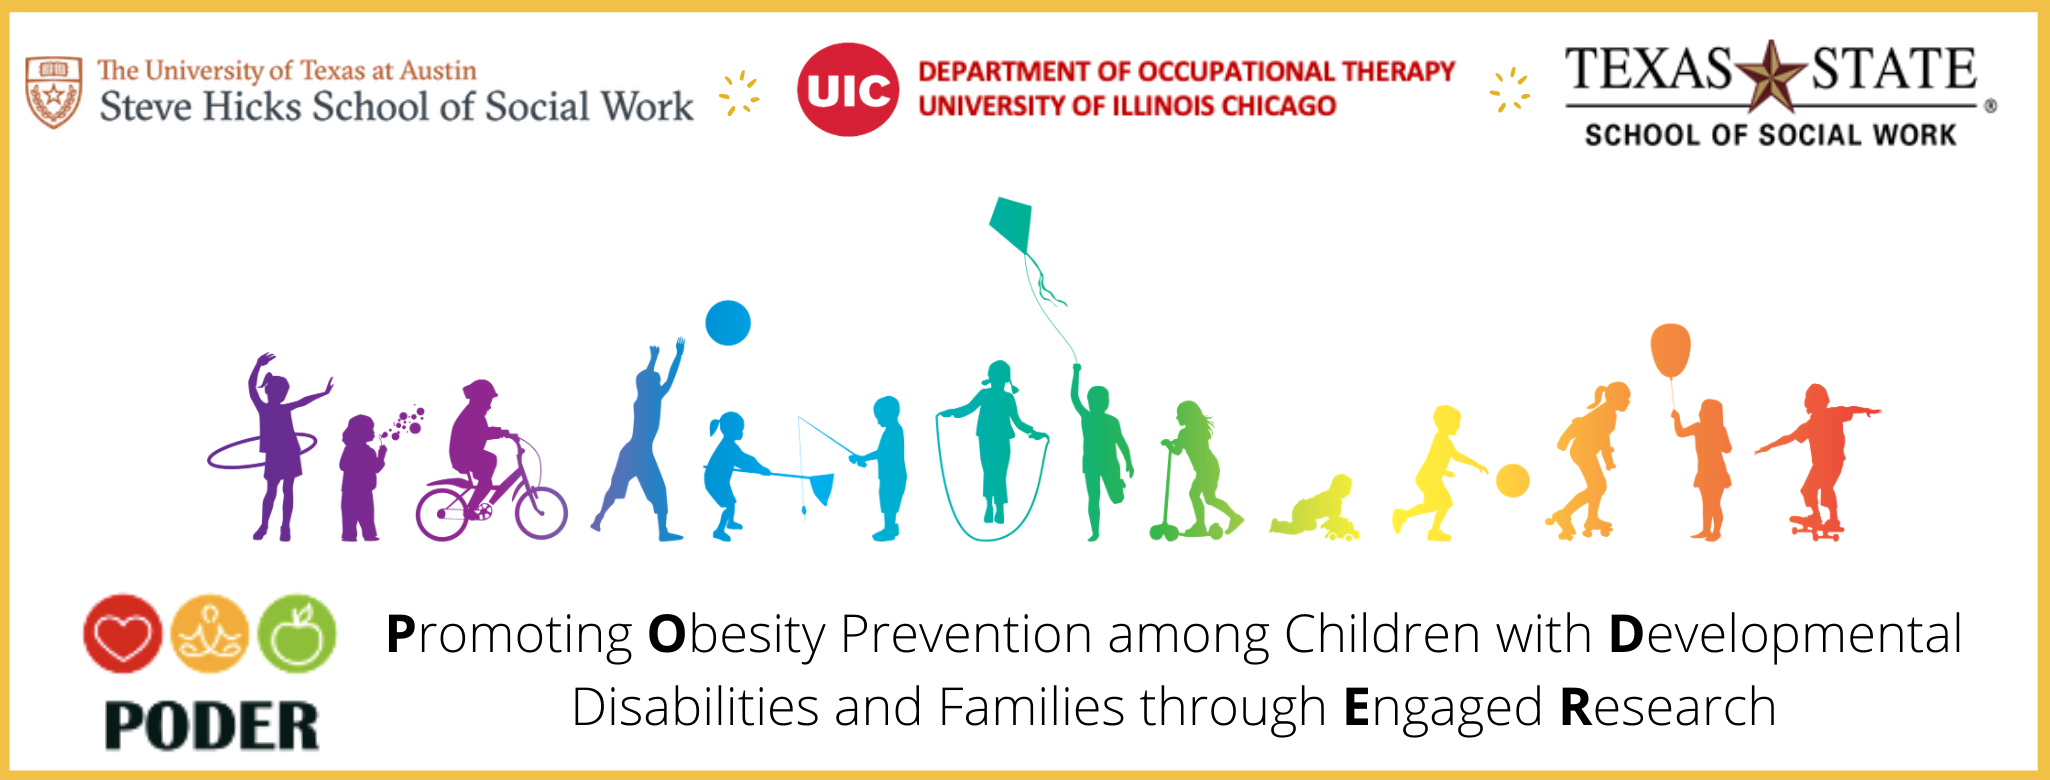 rainbow silhouettes of kids varying abilities playing in the header. Promoting Obesity Prevention among Children with Developmental Disabilities and Families Through Engaged Research headline underneath the drawings.